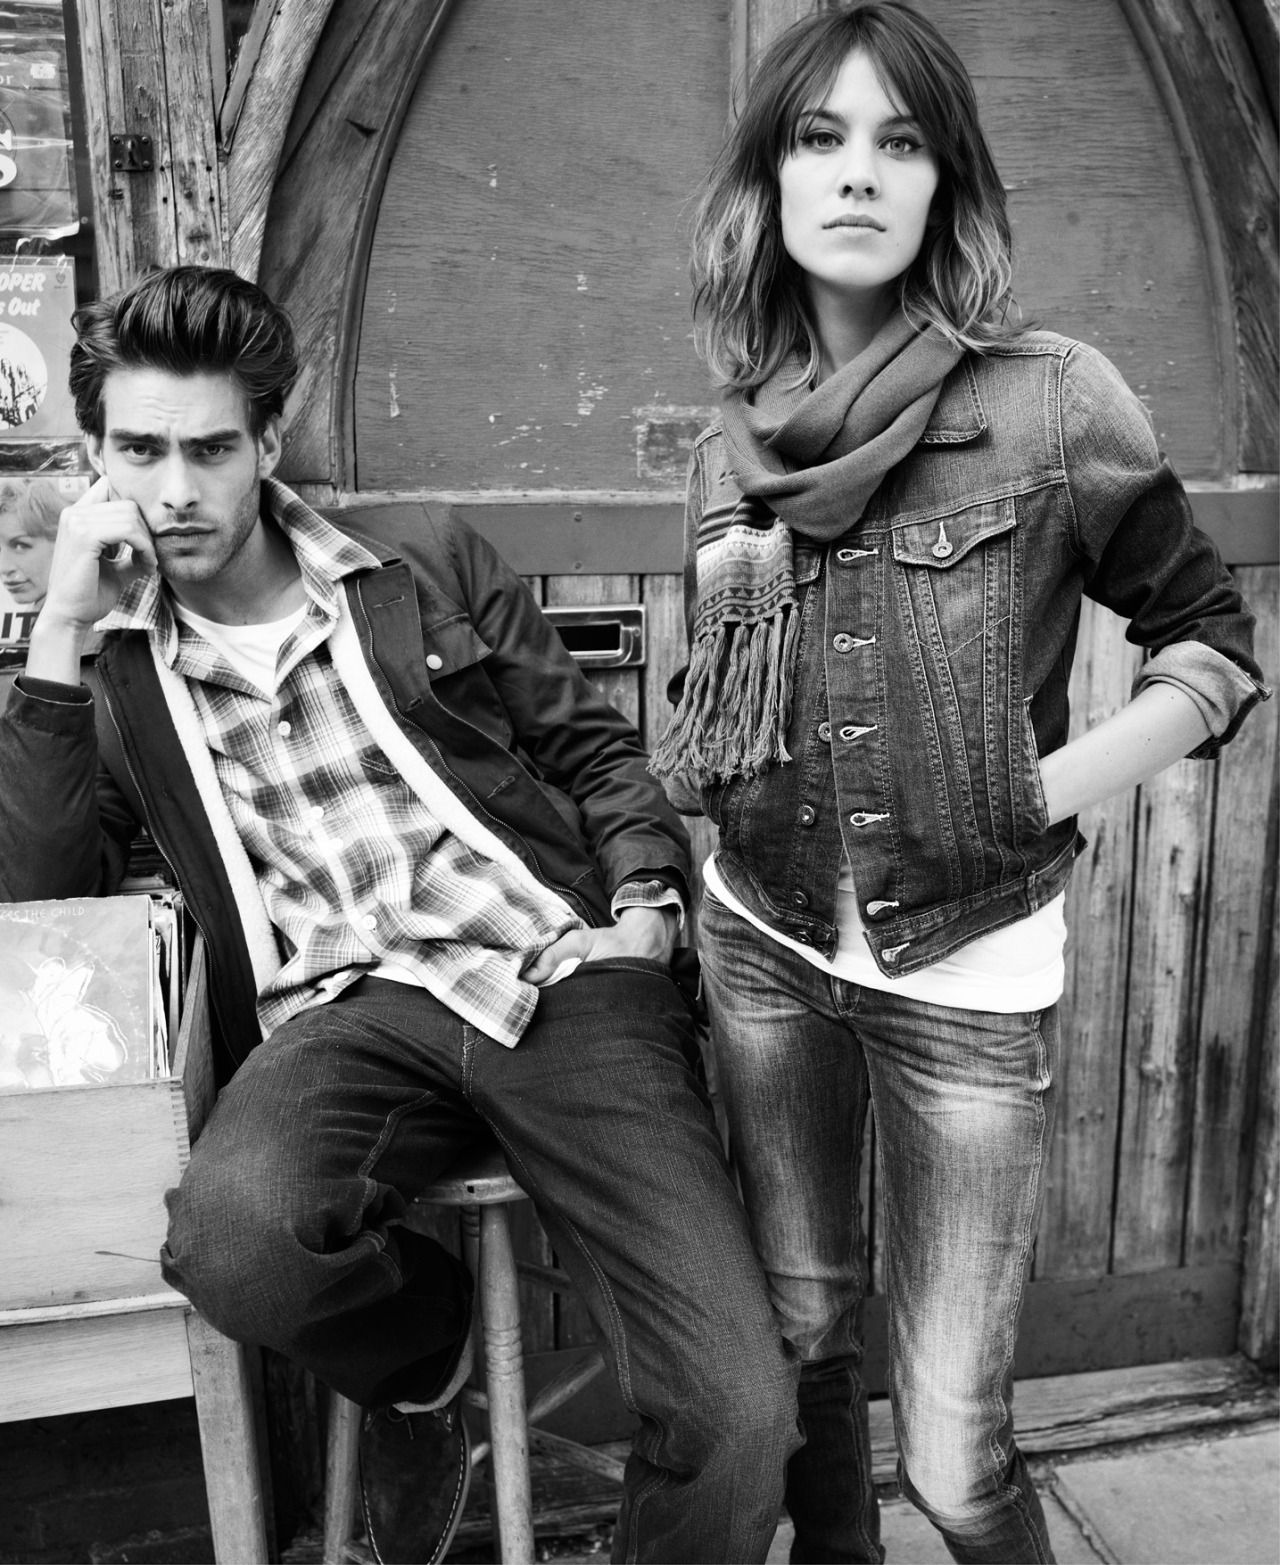 Alexa Chung for Pepe Jeans | Autumn Winter 2010/2011